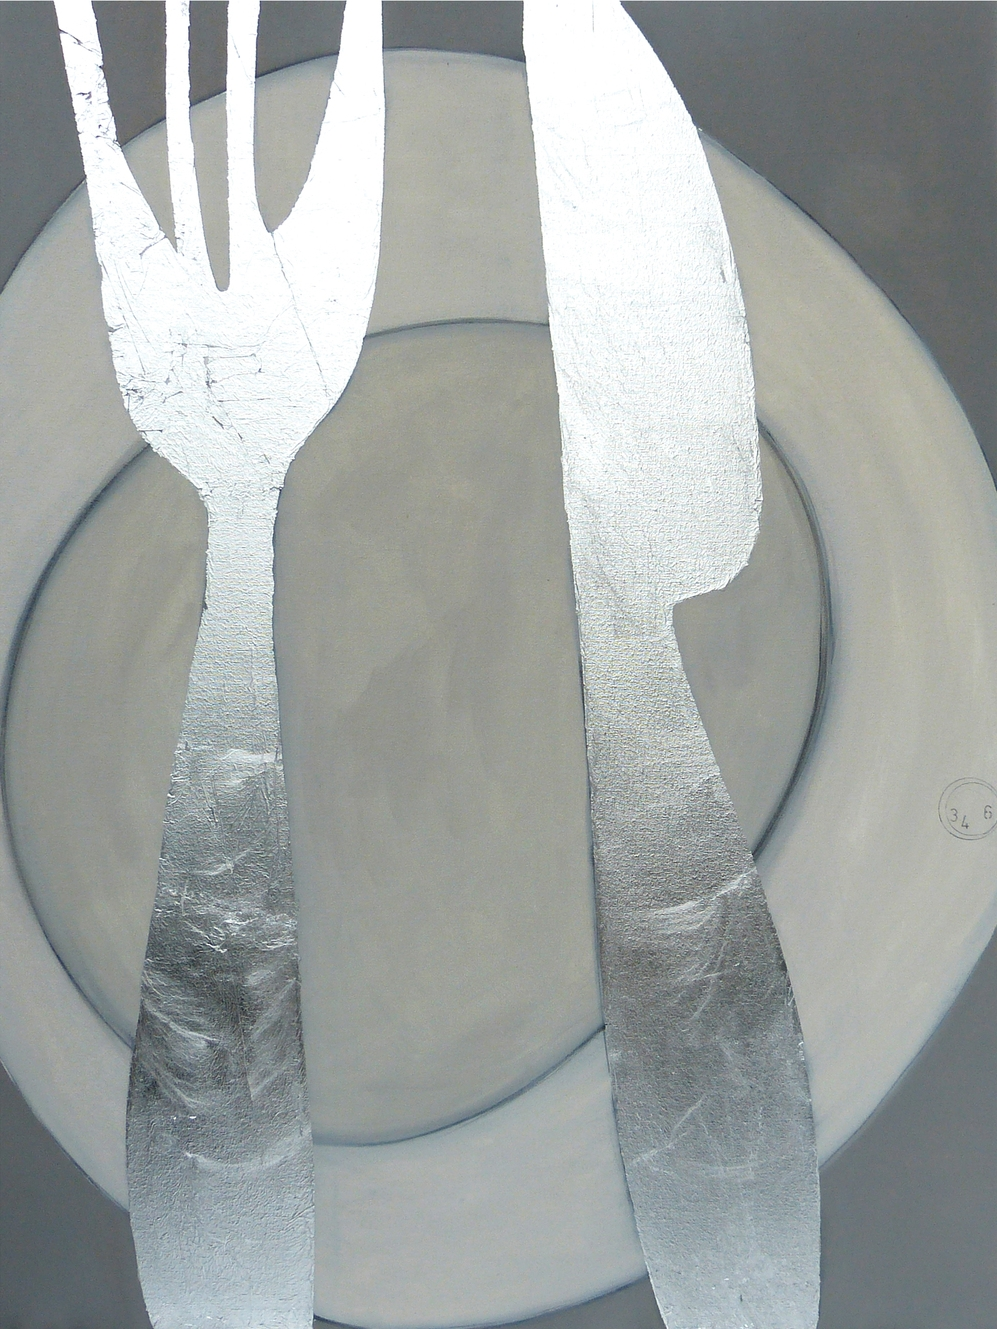 KNIFE AND FORK  102x76cm     | oil on canvas with silver leaf |   £1,600.00 | SOLD